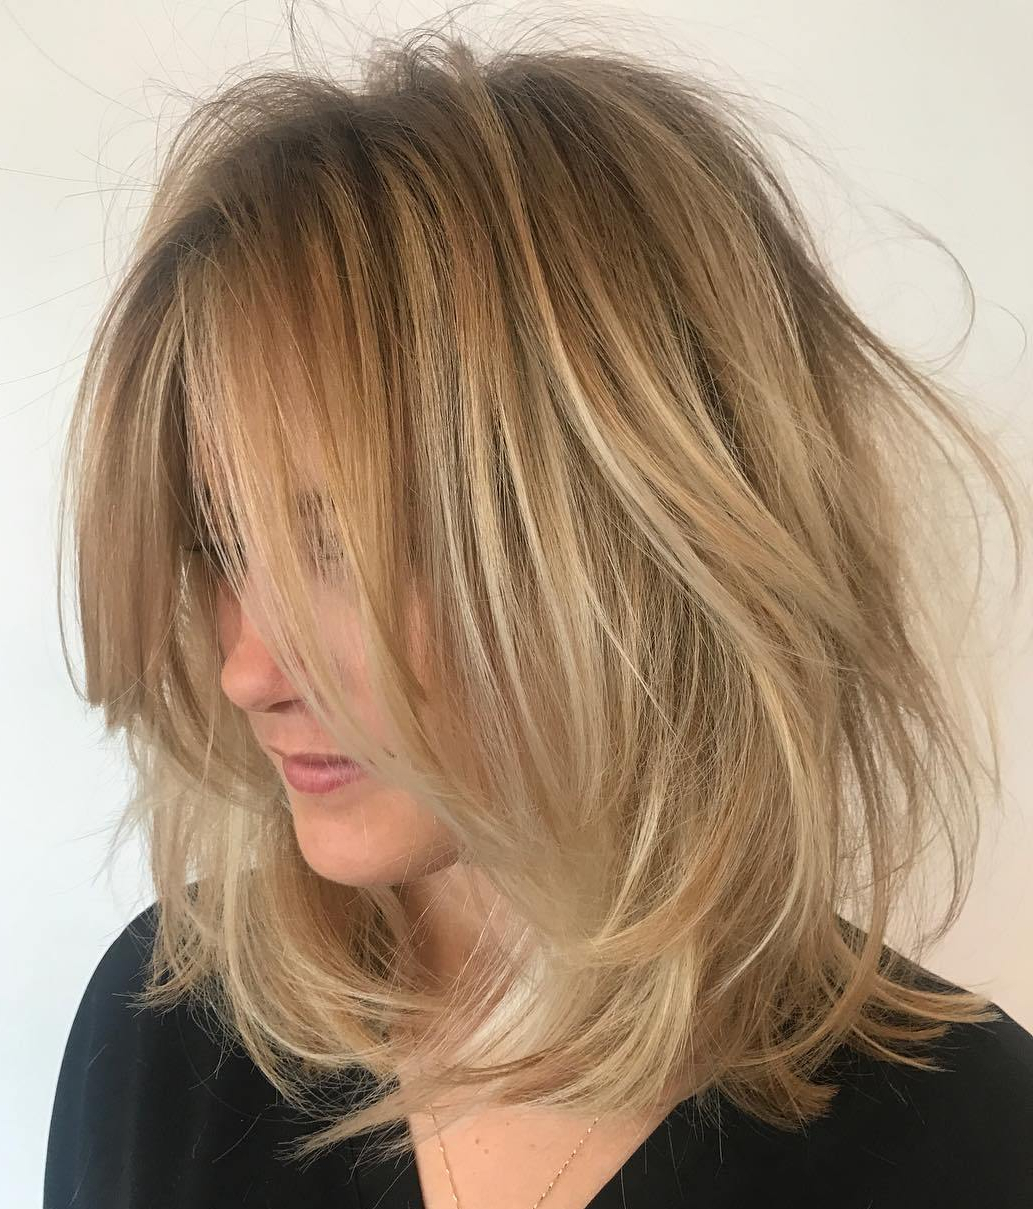 70 Devastatingly Cool Haircuts For Thin Hair Regarding Current Layered Haircuts With Cropped Locks On The Crown (View 14 of 20)